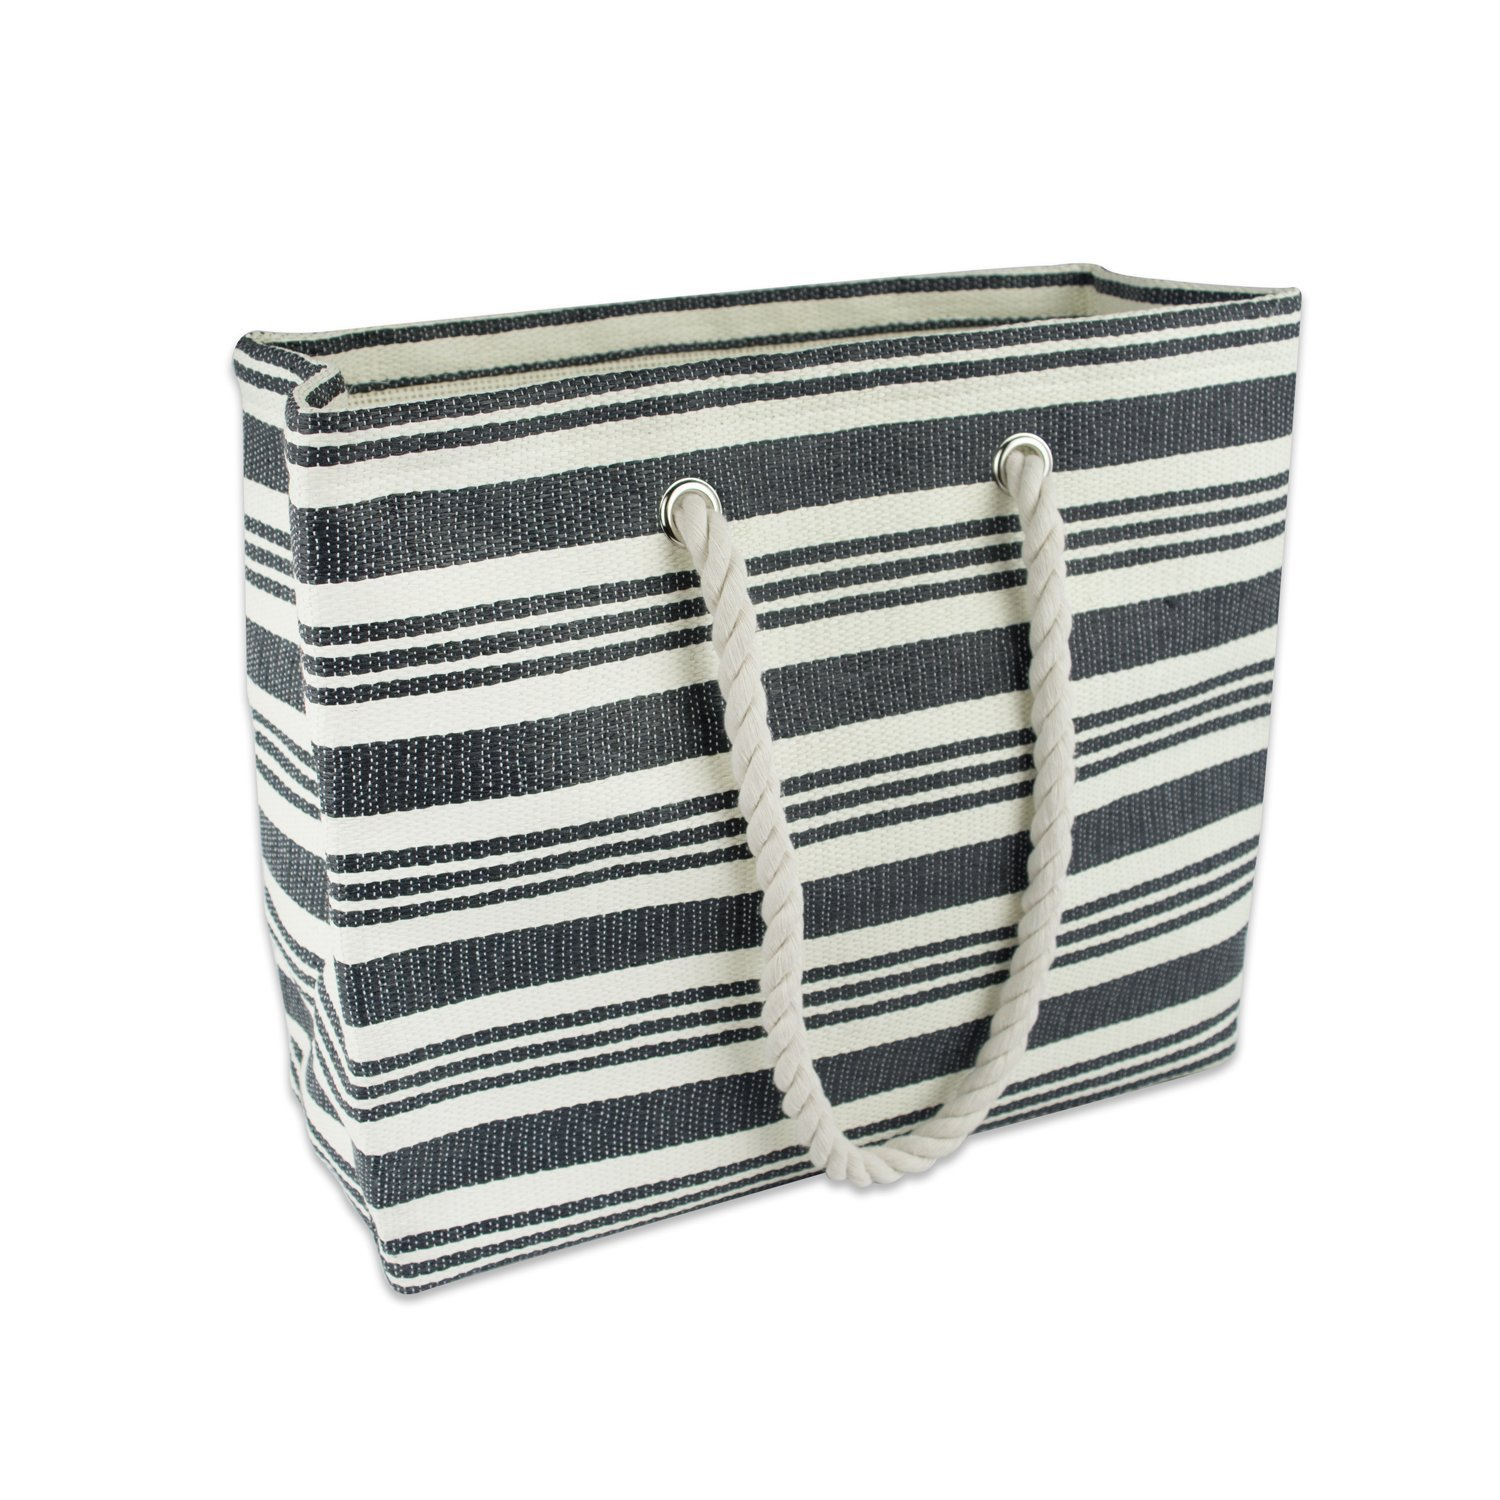 DII Convenient Tote For Travel, Magazines, Books, Laptop, Beach, Lake, and Picnics) - Black Bag, Urban Stripe by DII